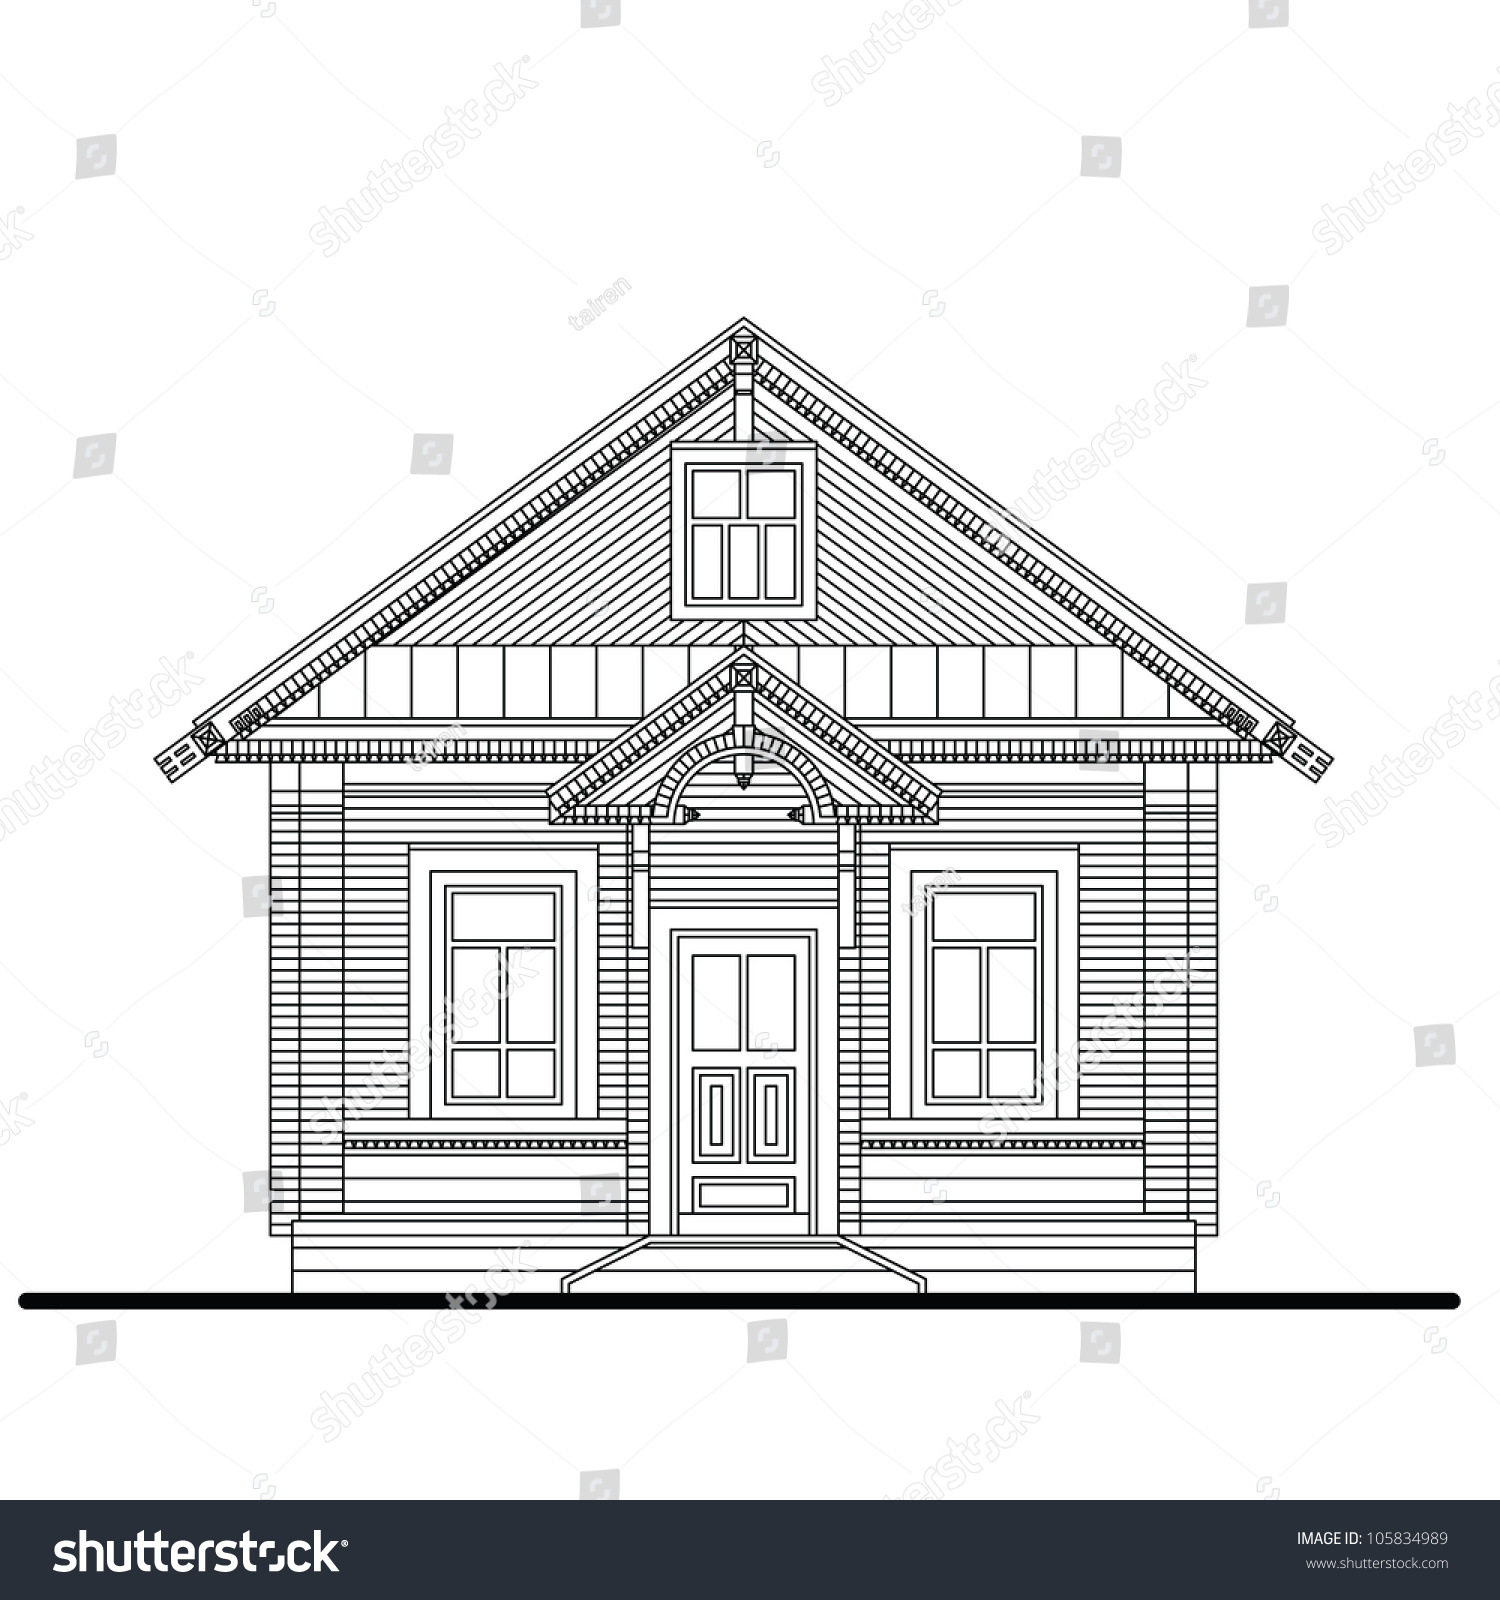 Drawing Of A Front Facade Of Small Wooden House With